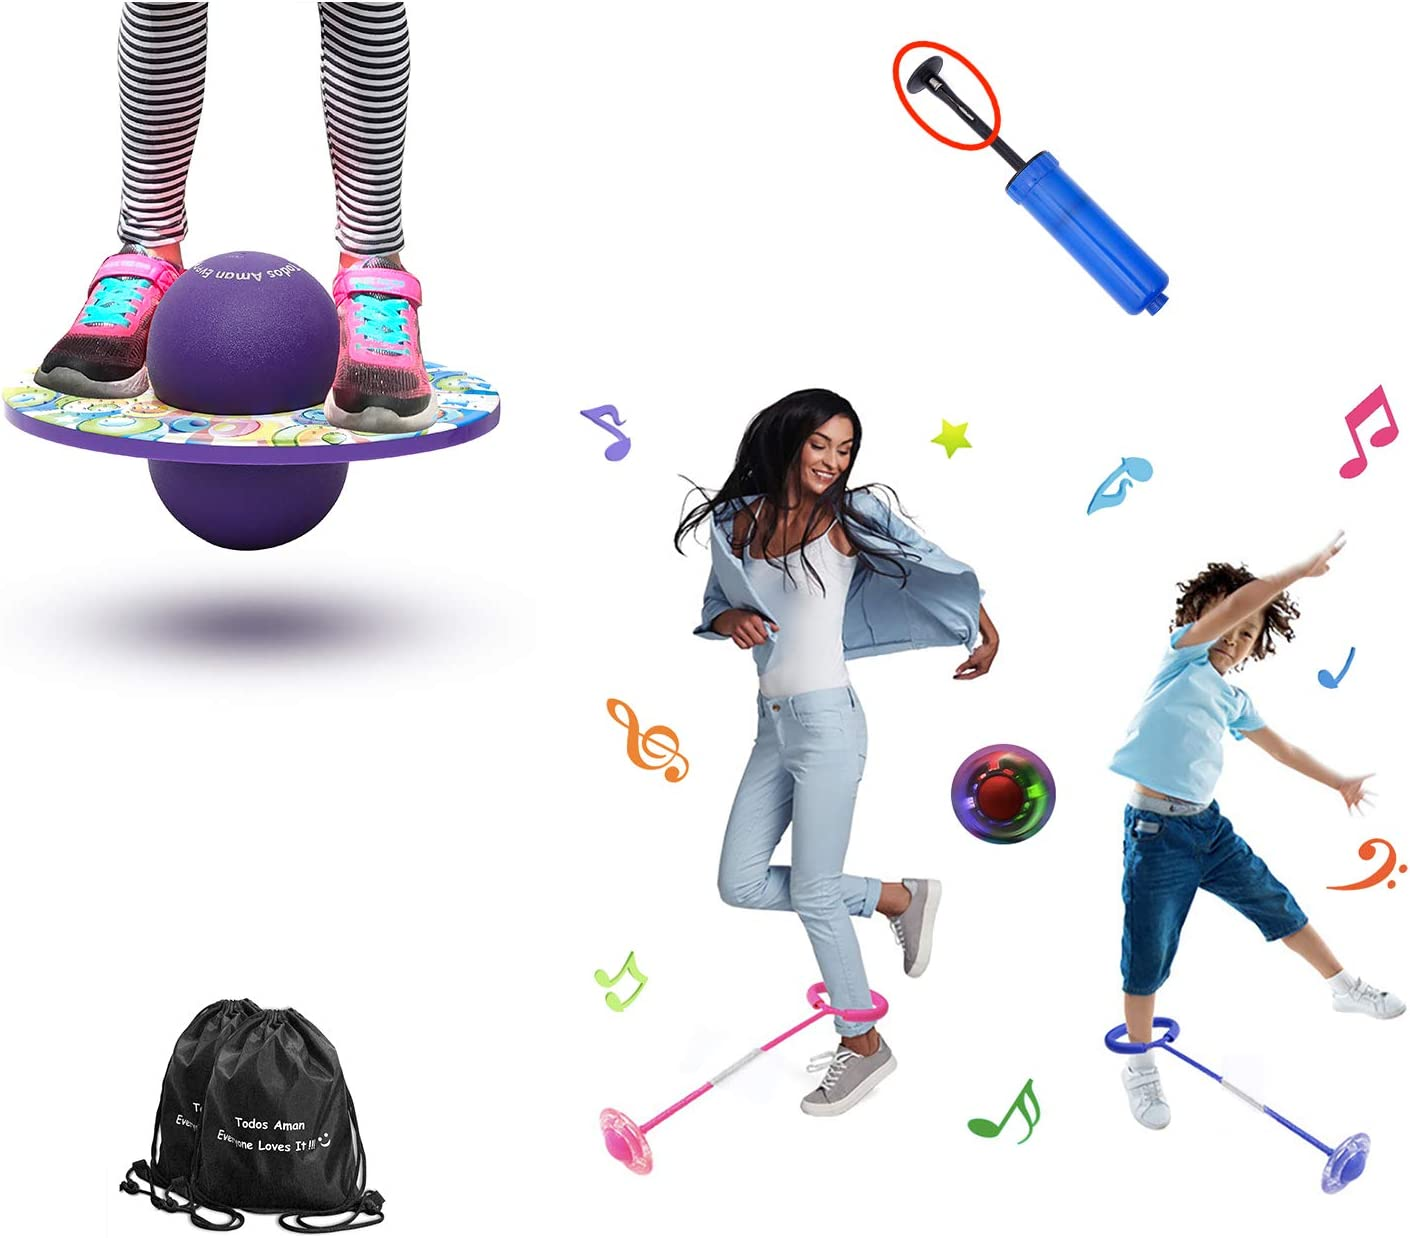 Todos Aman Pogo Ball /& Foldable Flashing LED Skip Cool Fun Challenge Jump Bounce Exercise Fitness Balance Coordination Burn Fat for Adults /& Kids Great Deal /& Gift